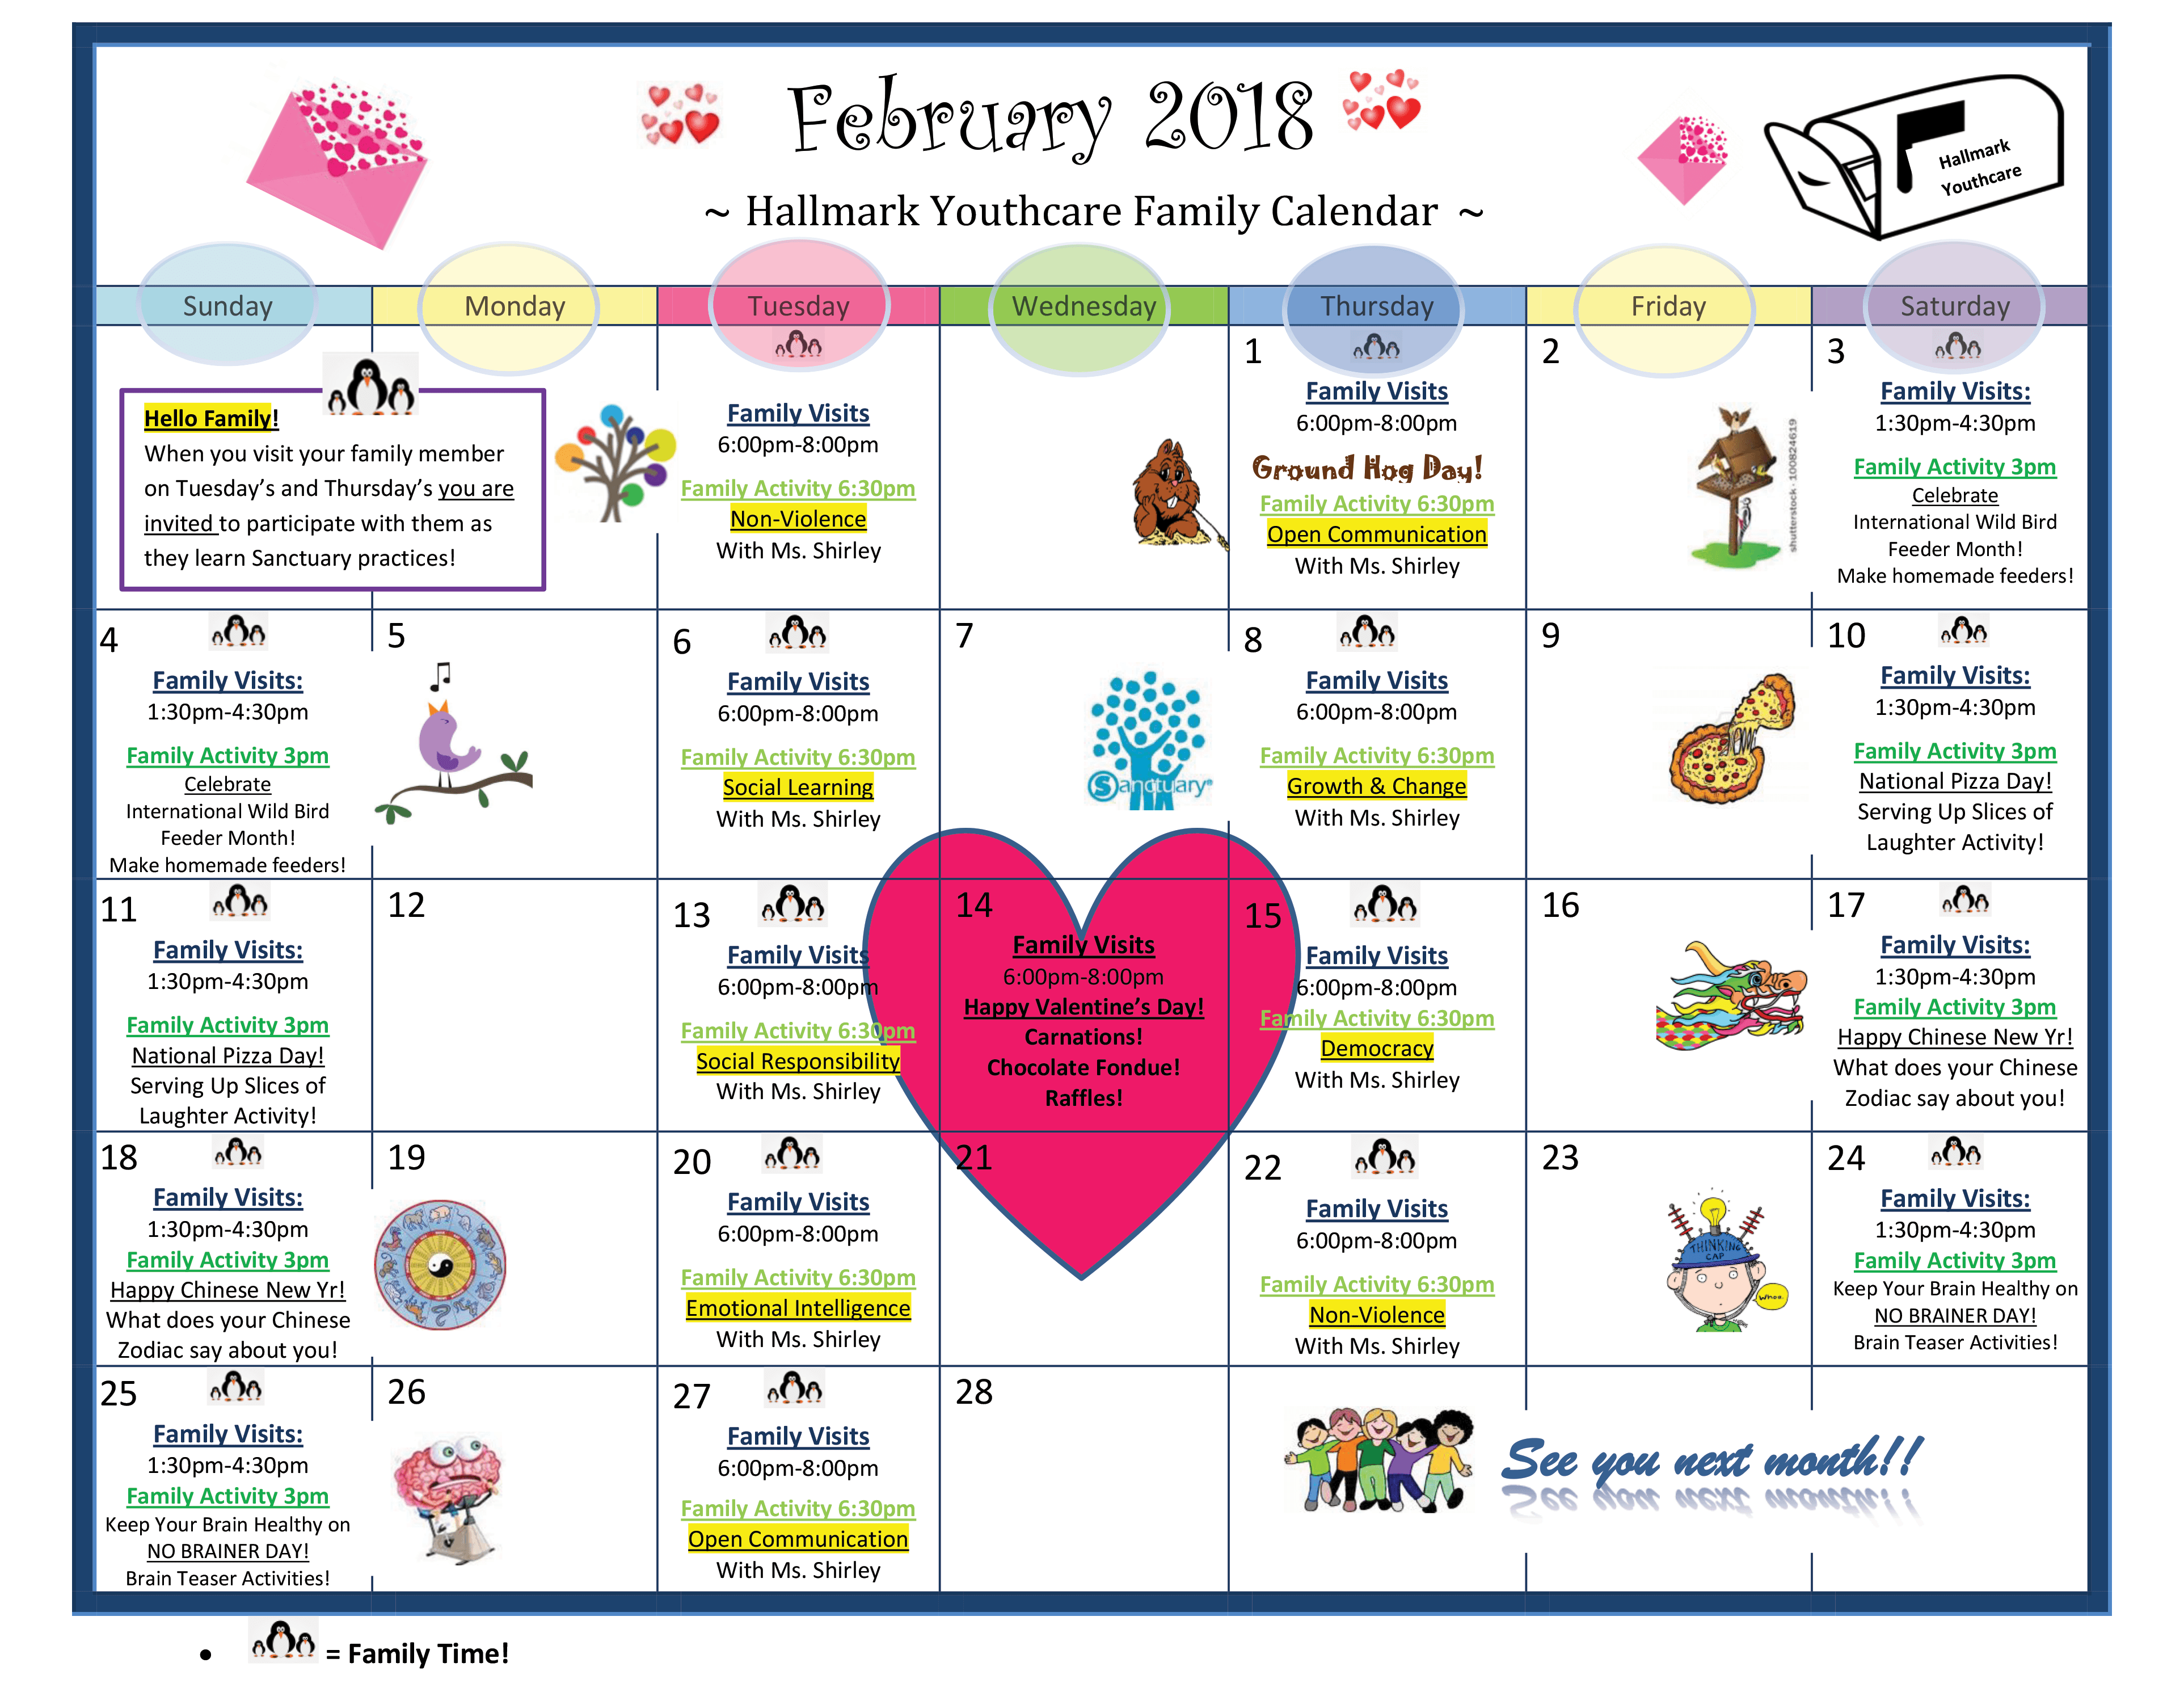 February 2018 Family Calendar | Hallmark Youth Care